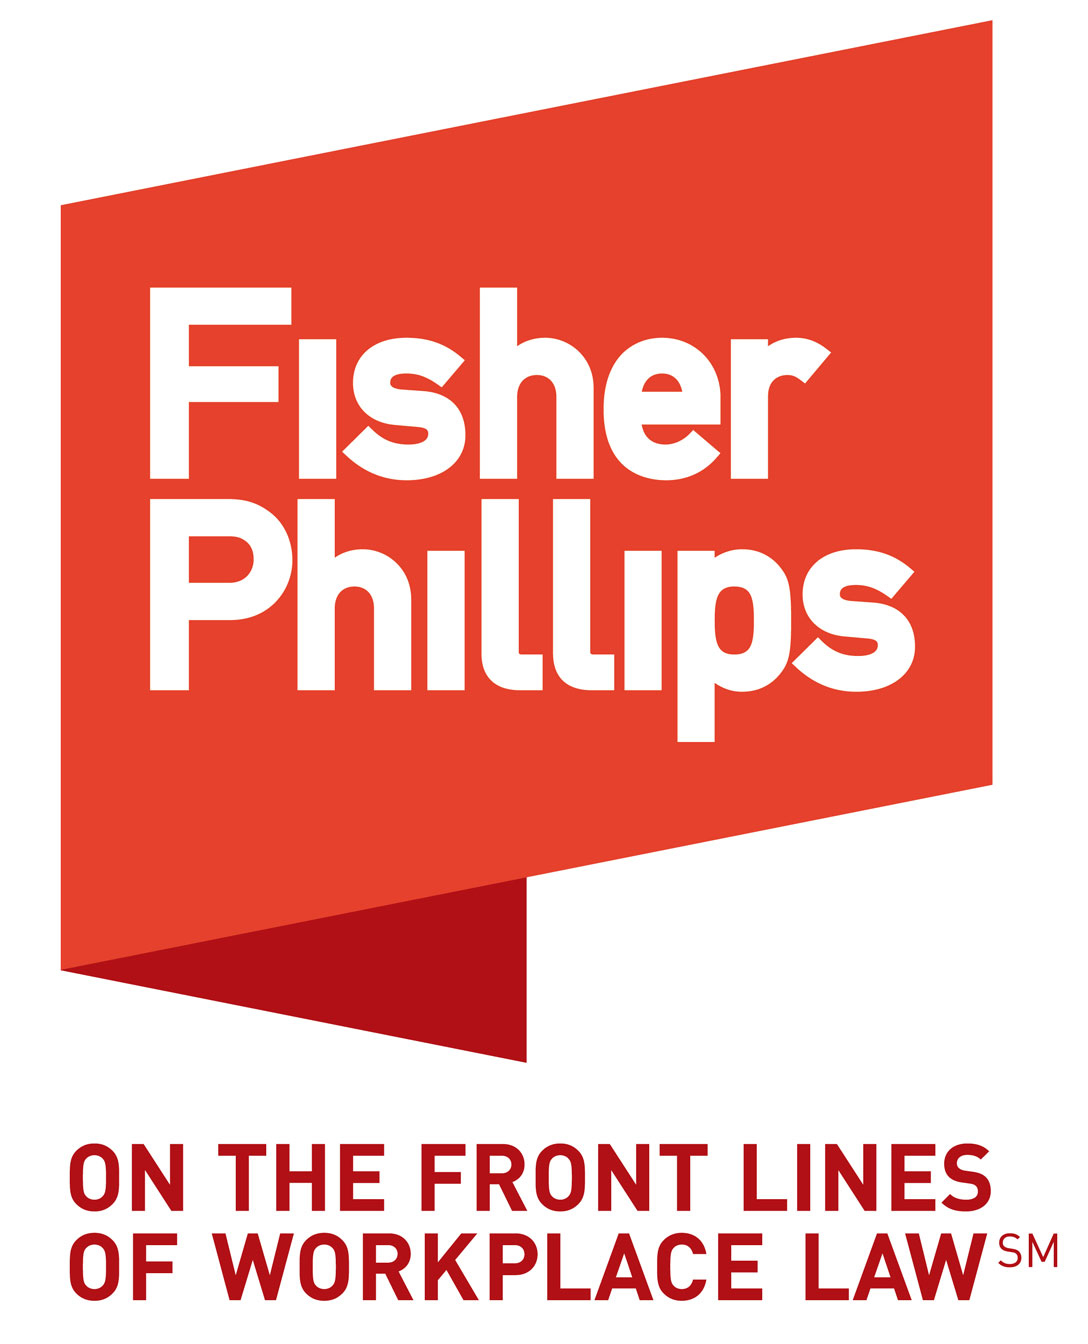 FisherPhillips_New logo 2016